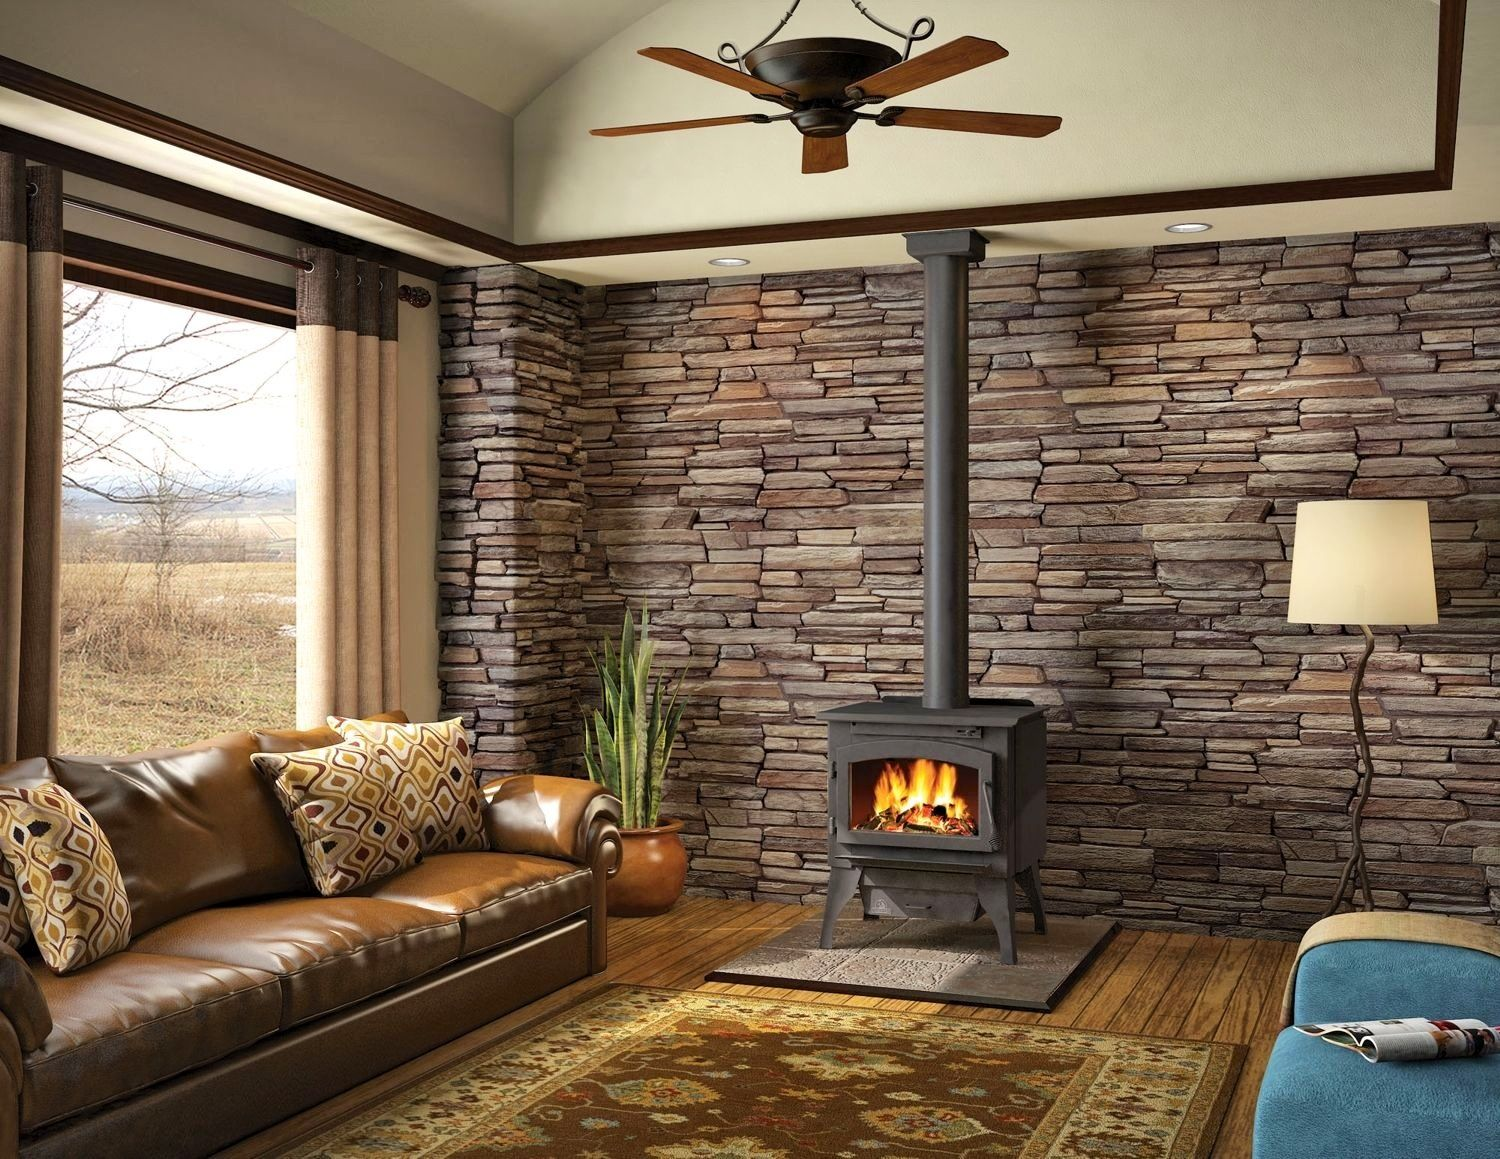 Wood stove surround ideas - Wood Stove With Ledgestone Back Wall Kind Of Liking The Stone Wall Idea